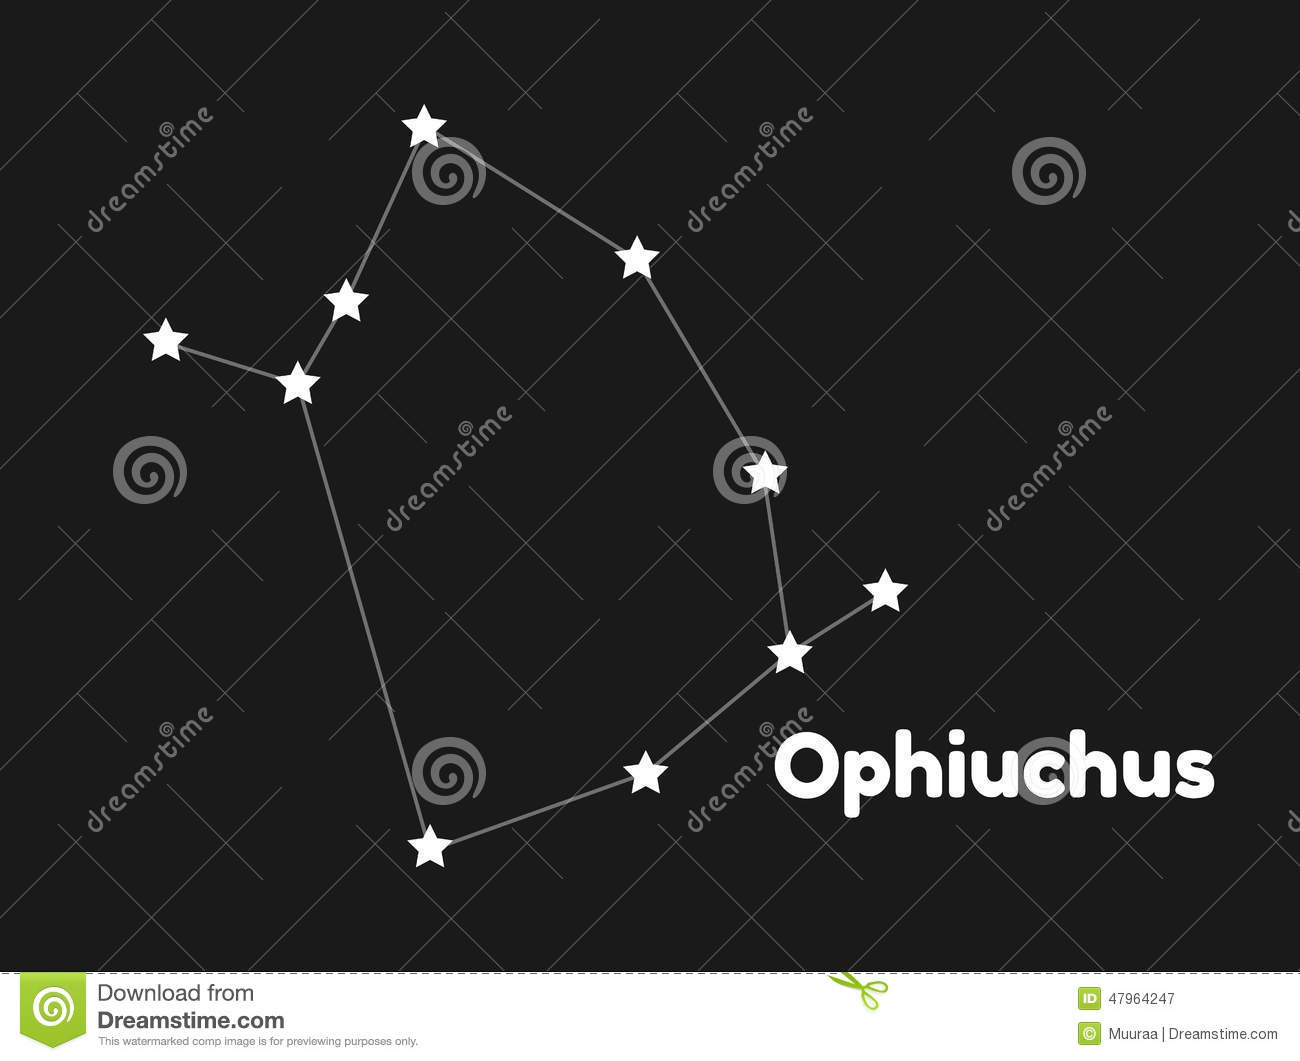 Barf Bag further File Ok Hand Emoji further Stock Illustration Constellation Ophiuchus Star Black Background Vector Image47964247 further Aluminium Frame Mag ic Whiteboard also Arrow Icon. on black eraser